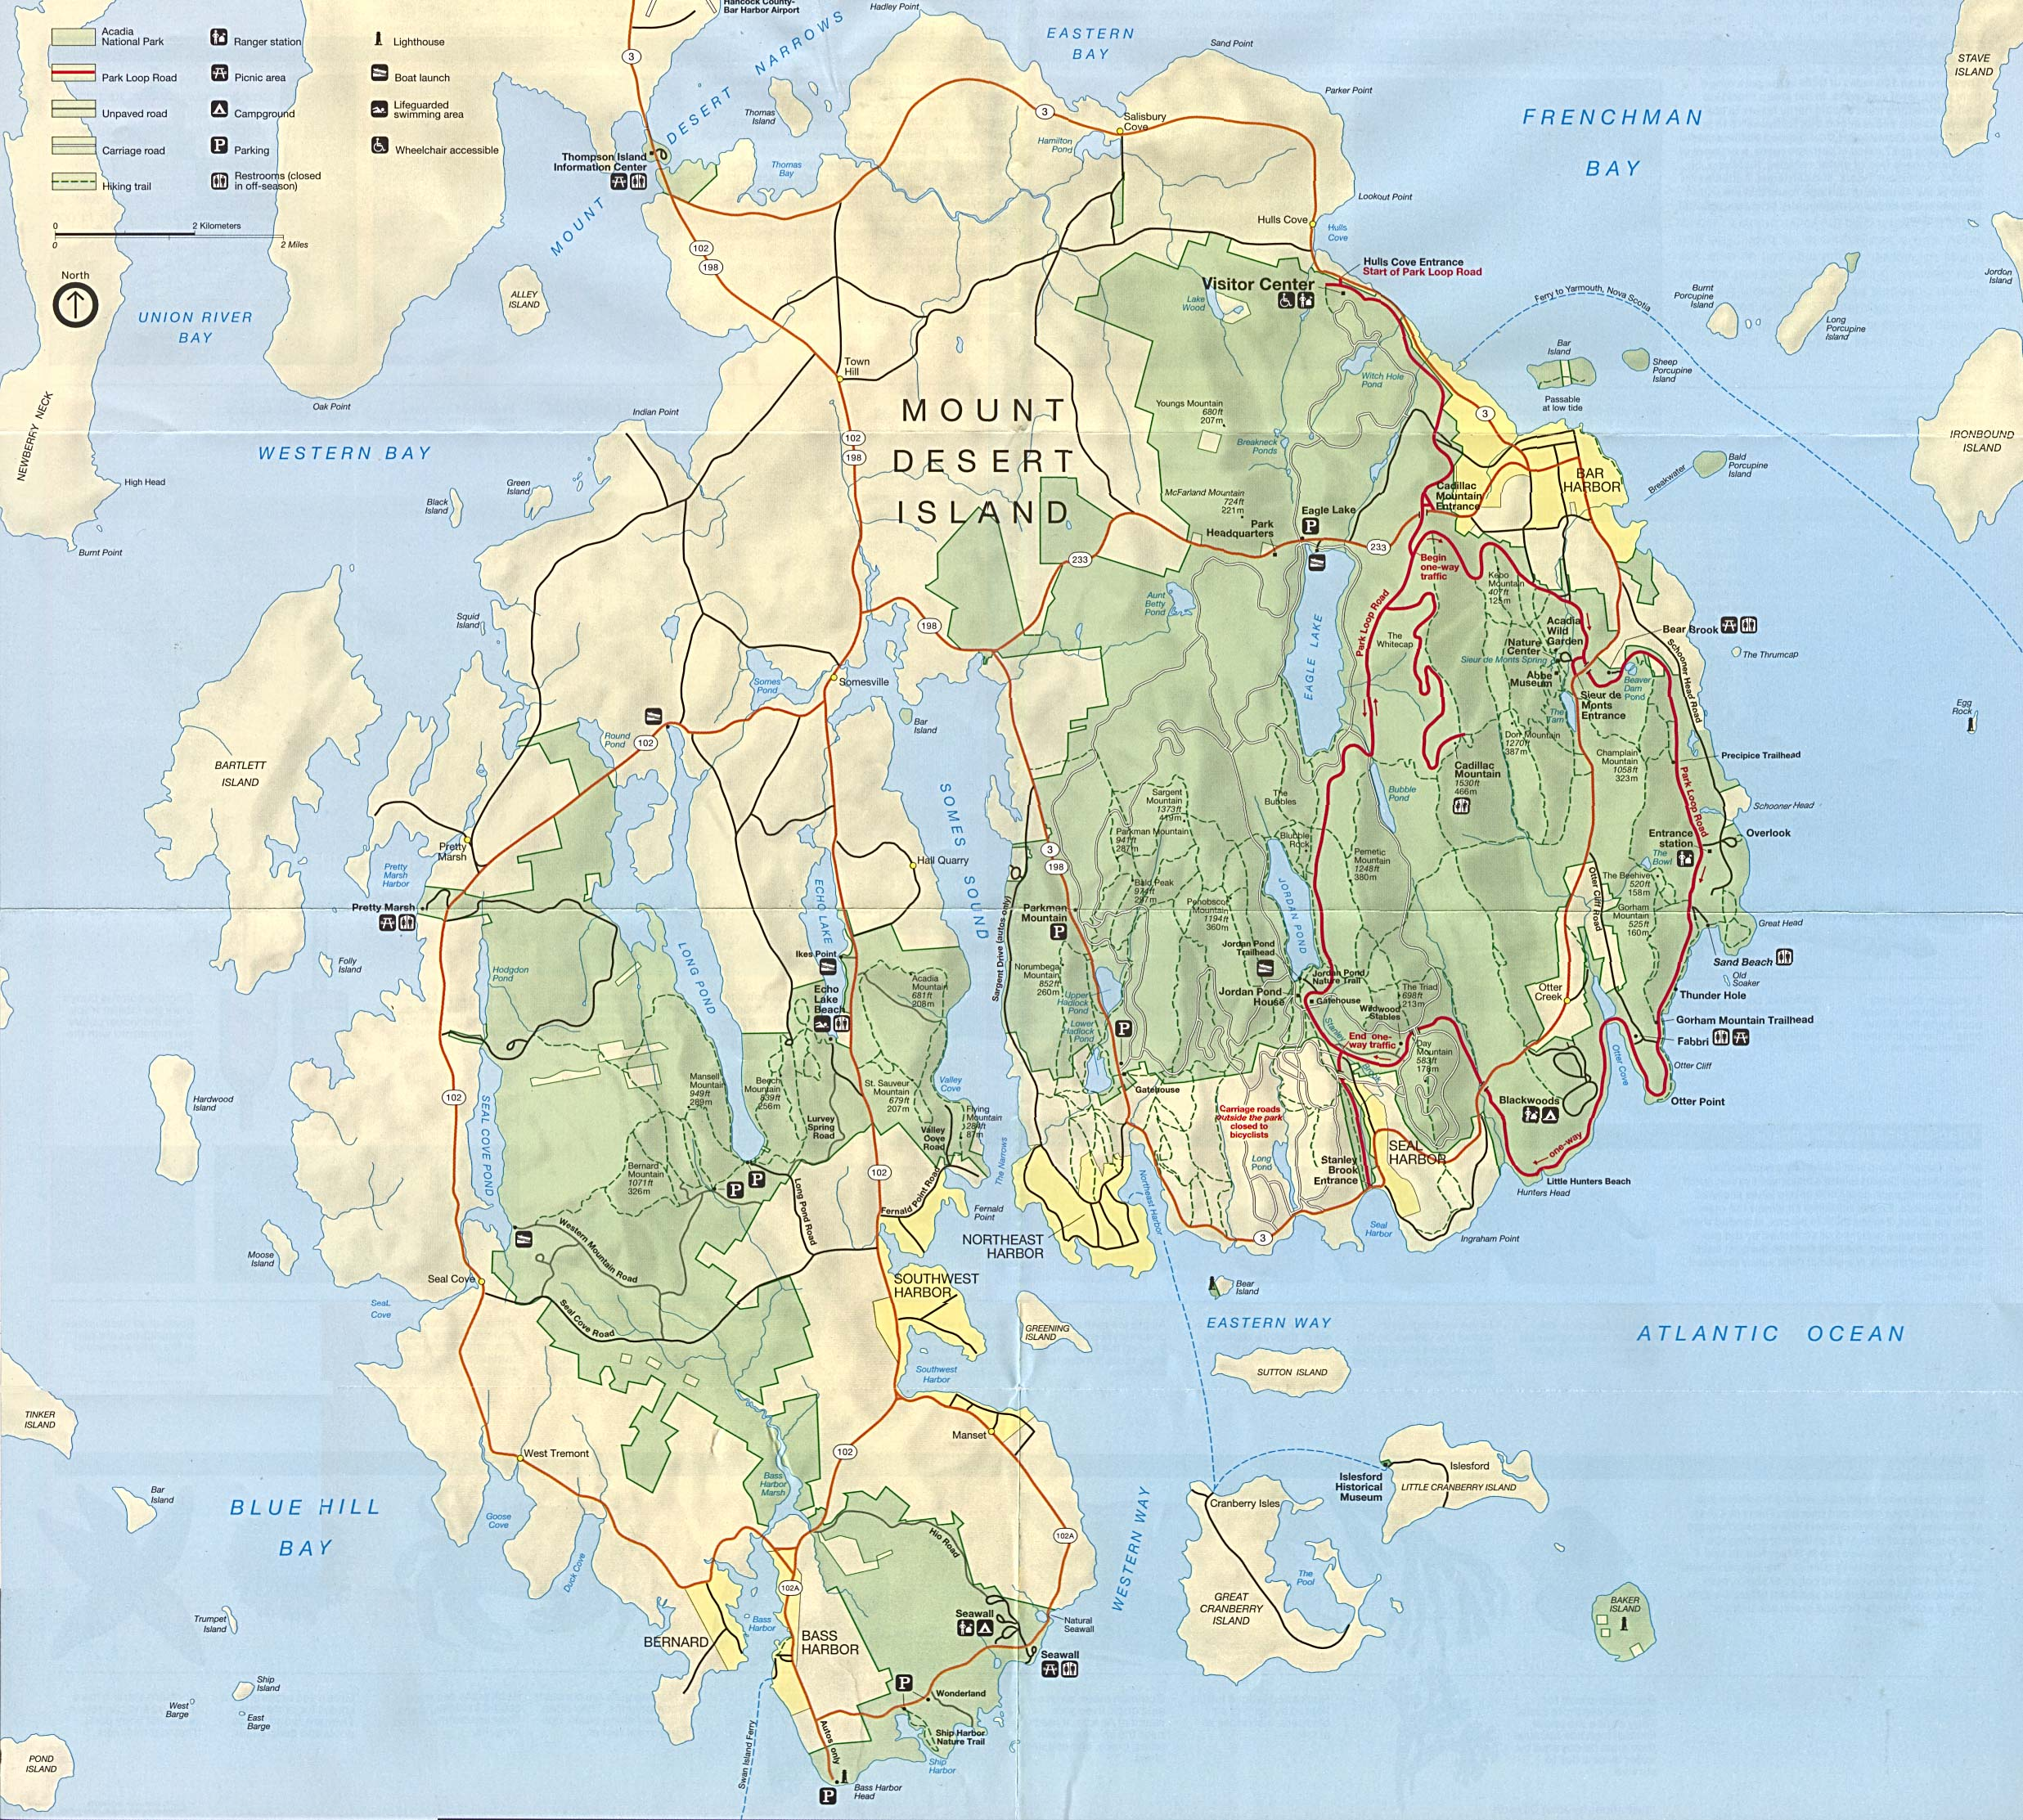 Topography Map Of Maine.Maps Of United States National Parks And Monuments